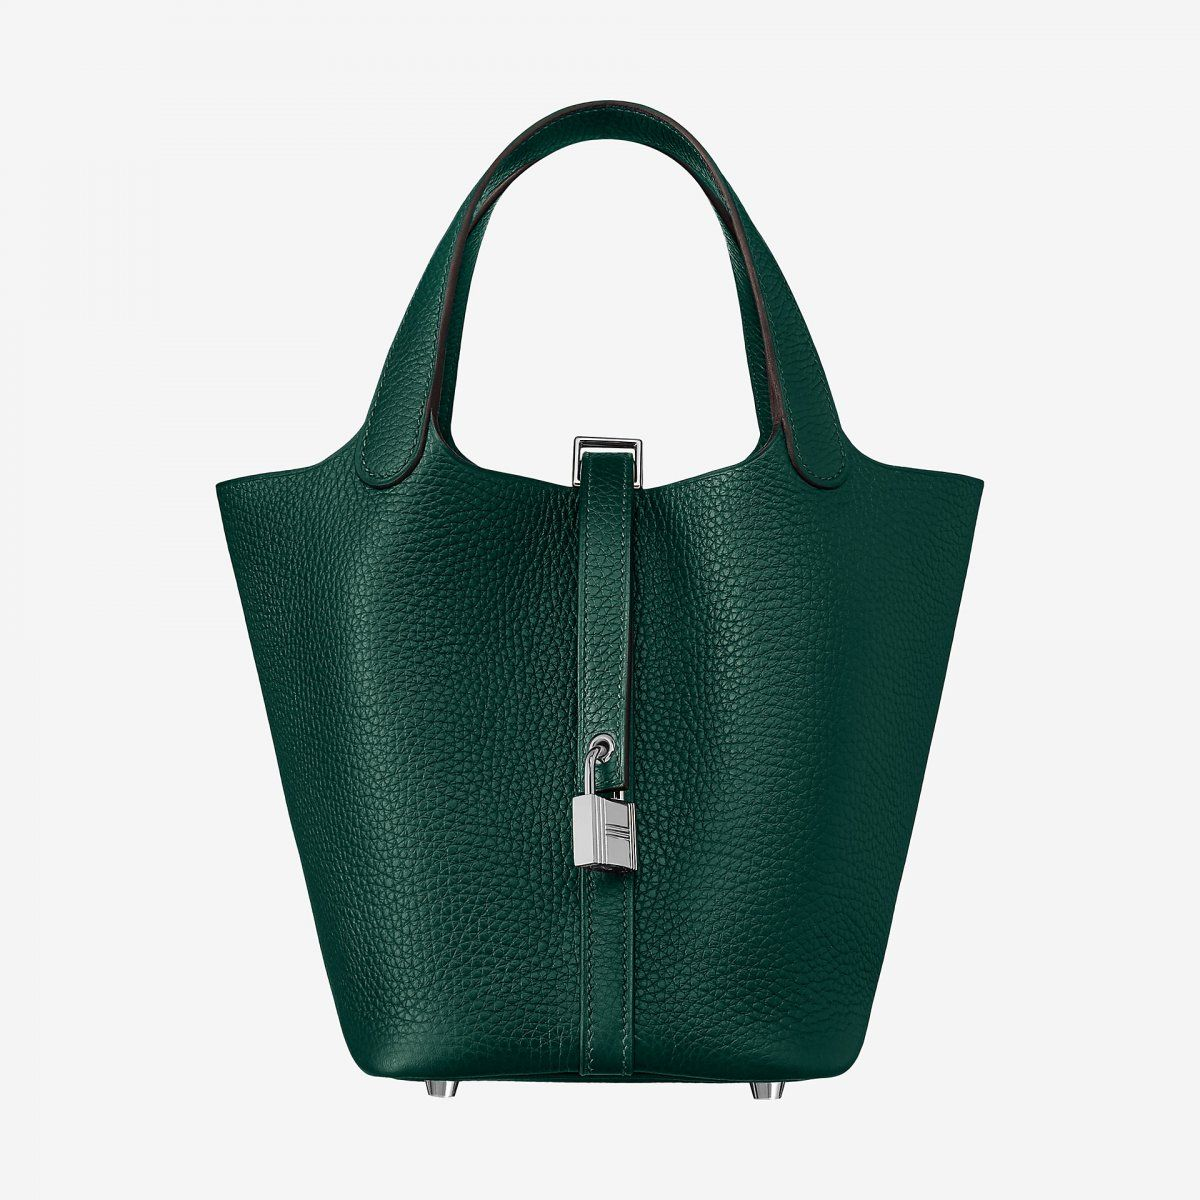 795e4d7a5042 hermes vert cypres picotin phw sac-picotin-lock-18 | bags in 2019 ...